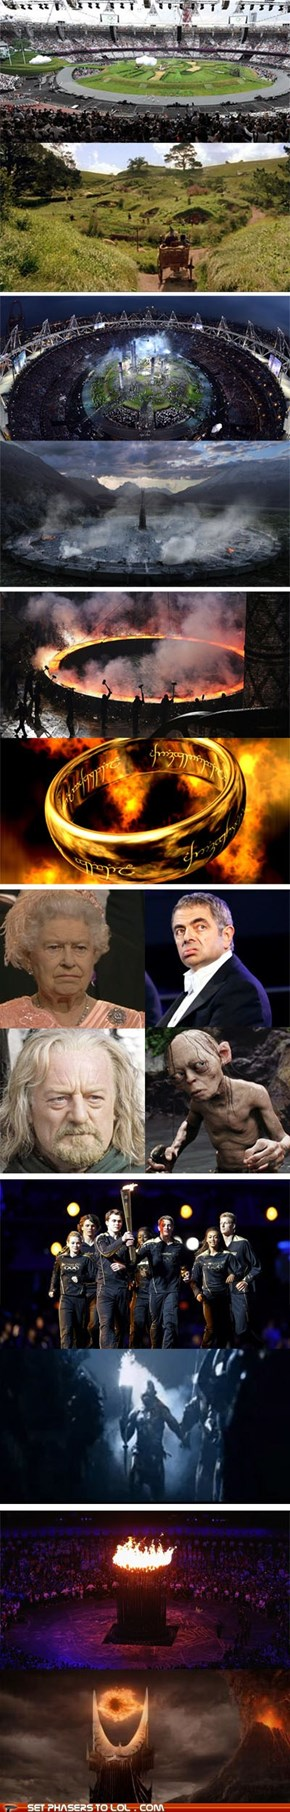 Lord of the Rings - I Knew There was Something Familiar About the Opening Ceremony